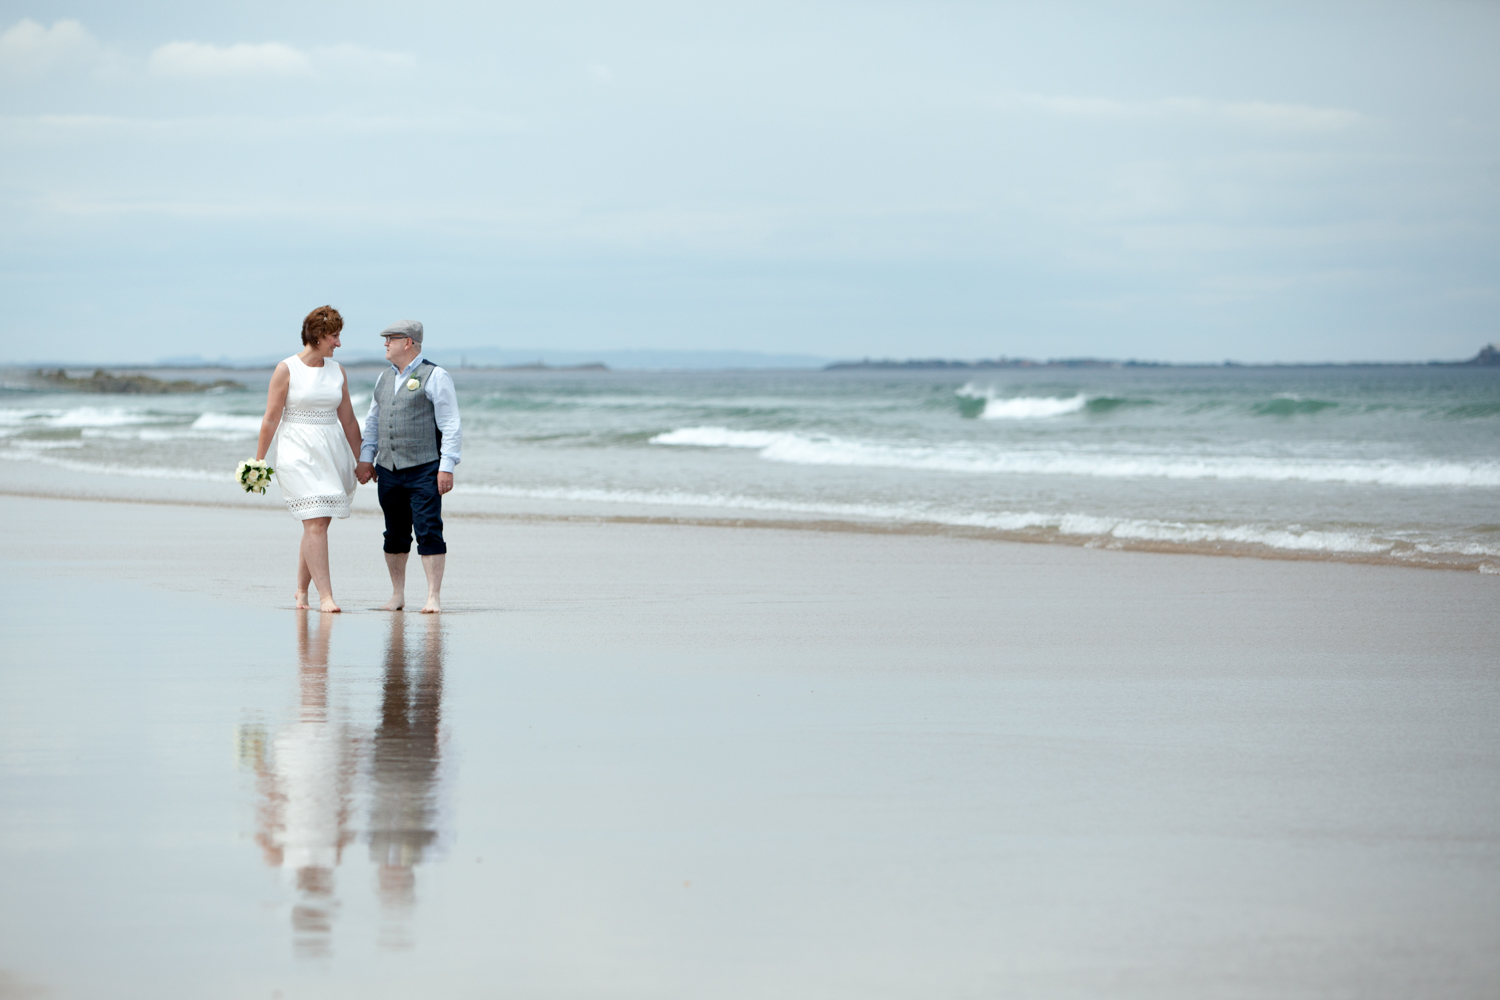 wedding-bamburgh-pictorial-elopement-friends-beach-0994.jpg